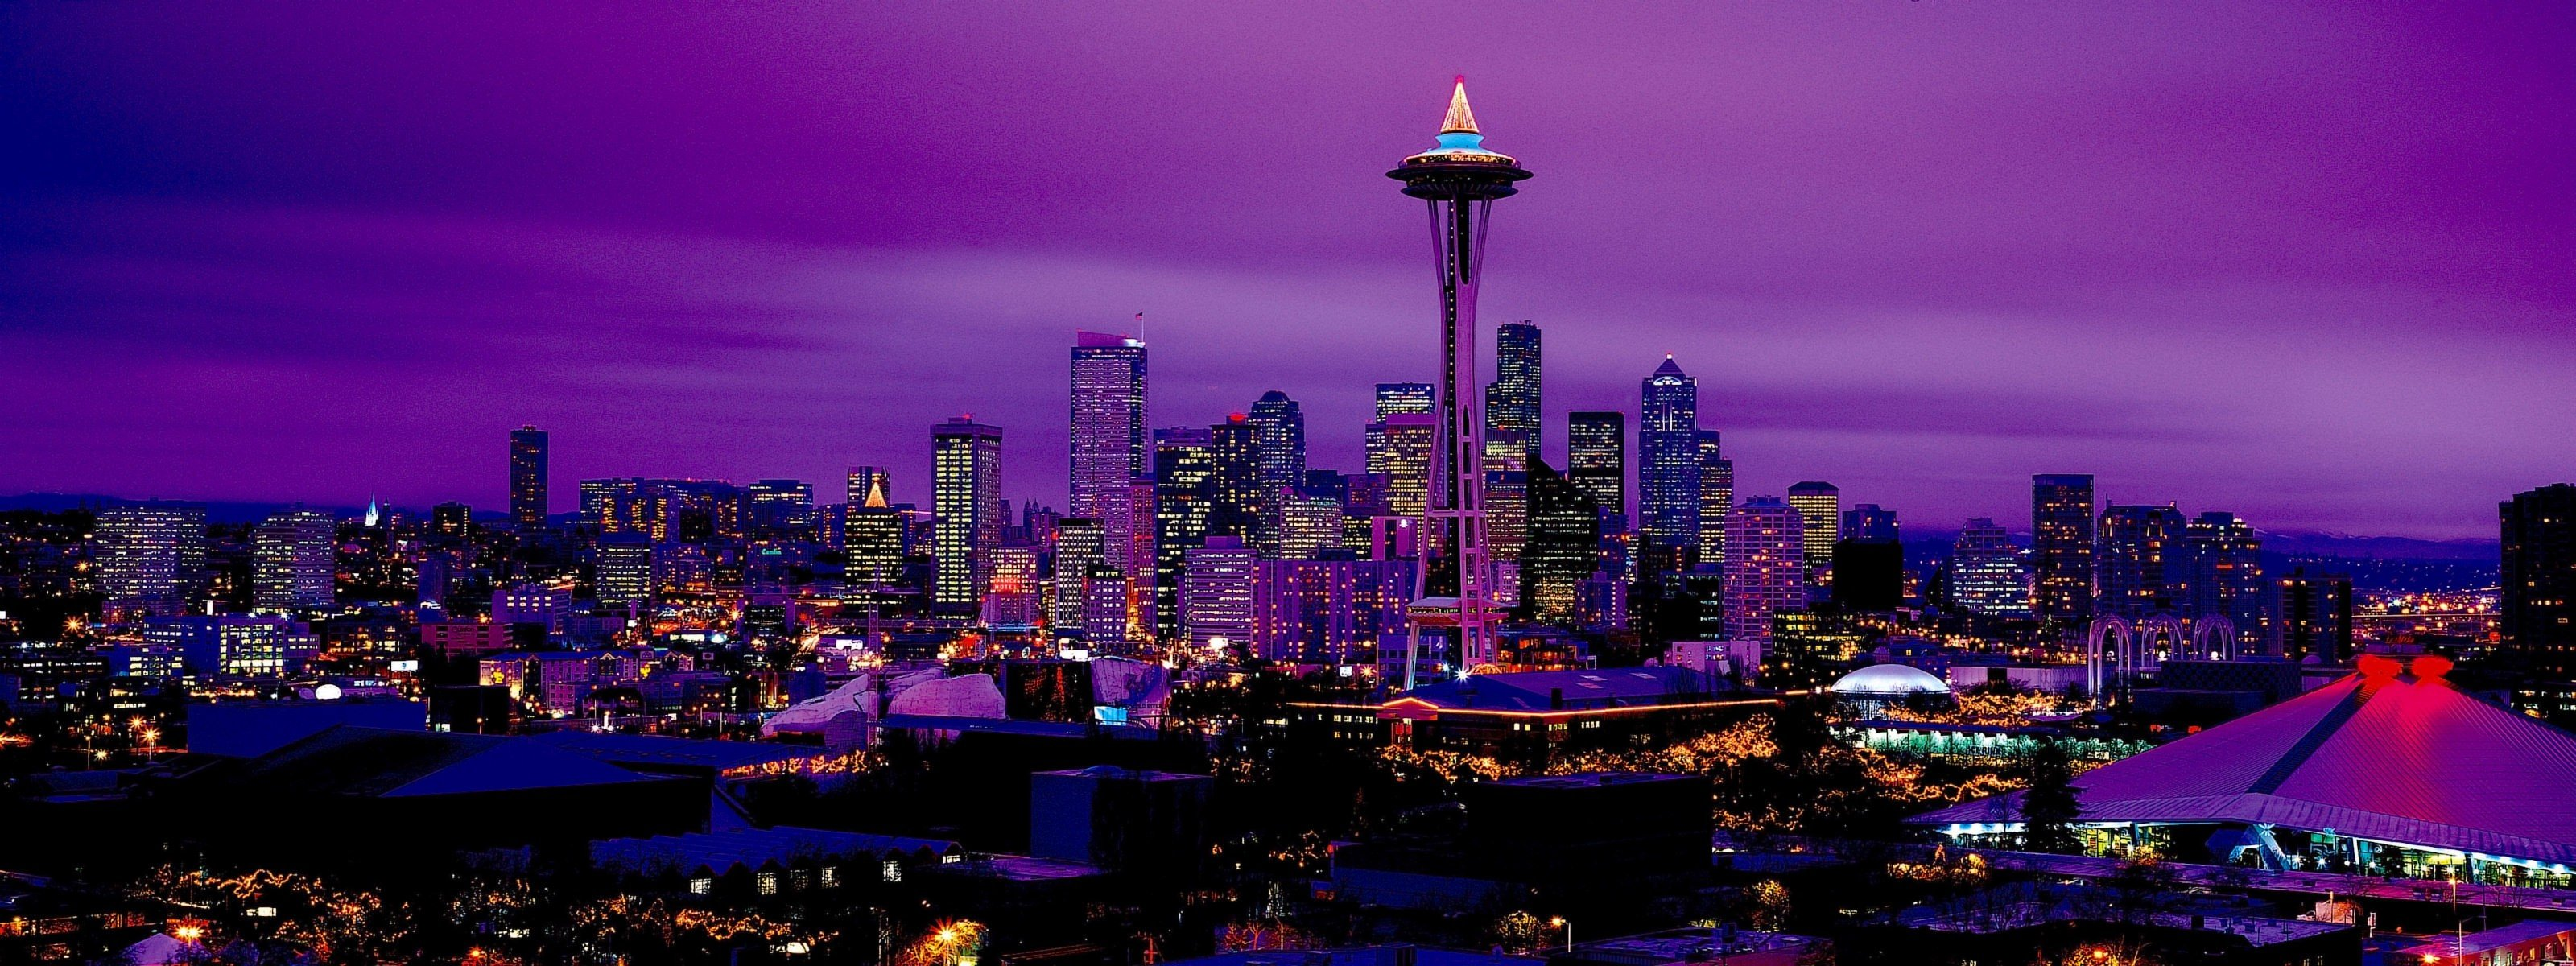 Free download Seattle wallpaper ID:474406 dual monitor 3200x1200 for computer